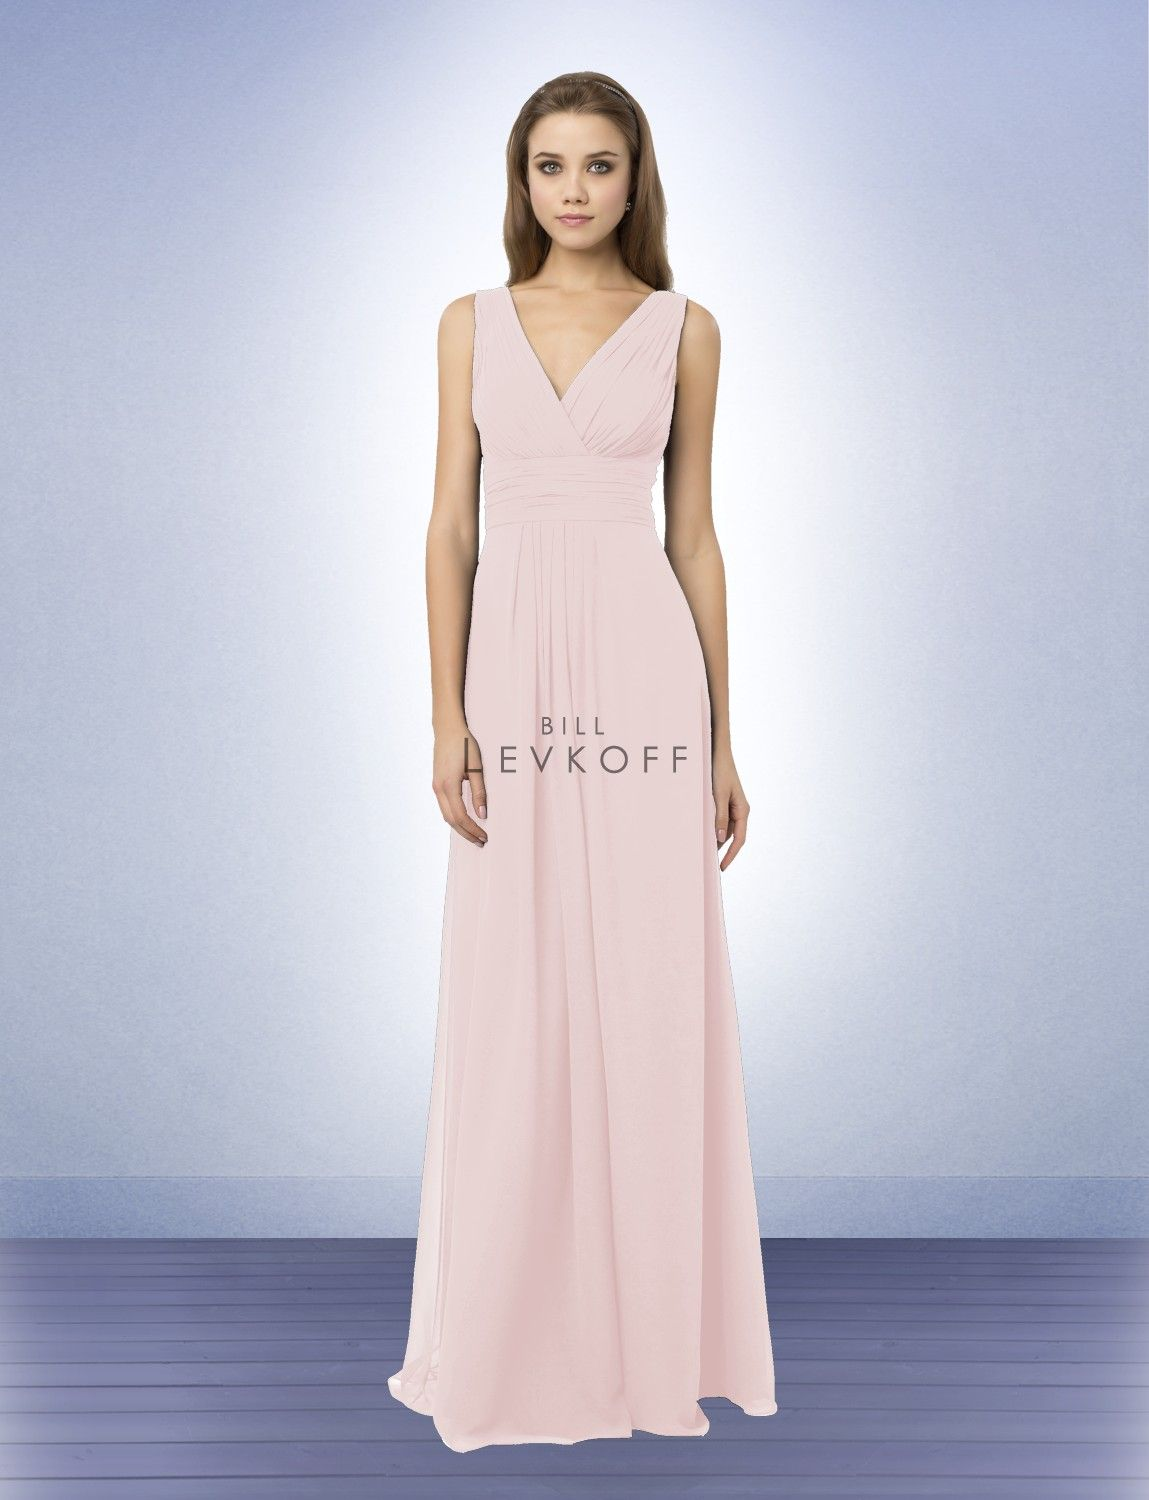 331869d9e7c Bill Levkoff - Bridesmaid Dress Style 768 Petal Pink  .....idea for wedding  dress but in natural